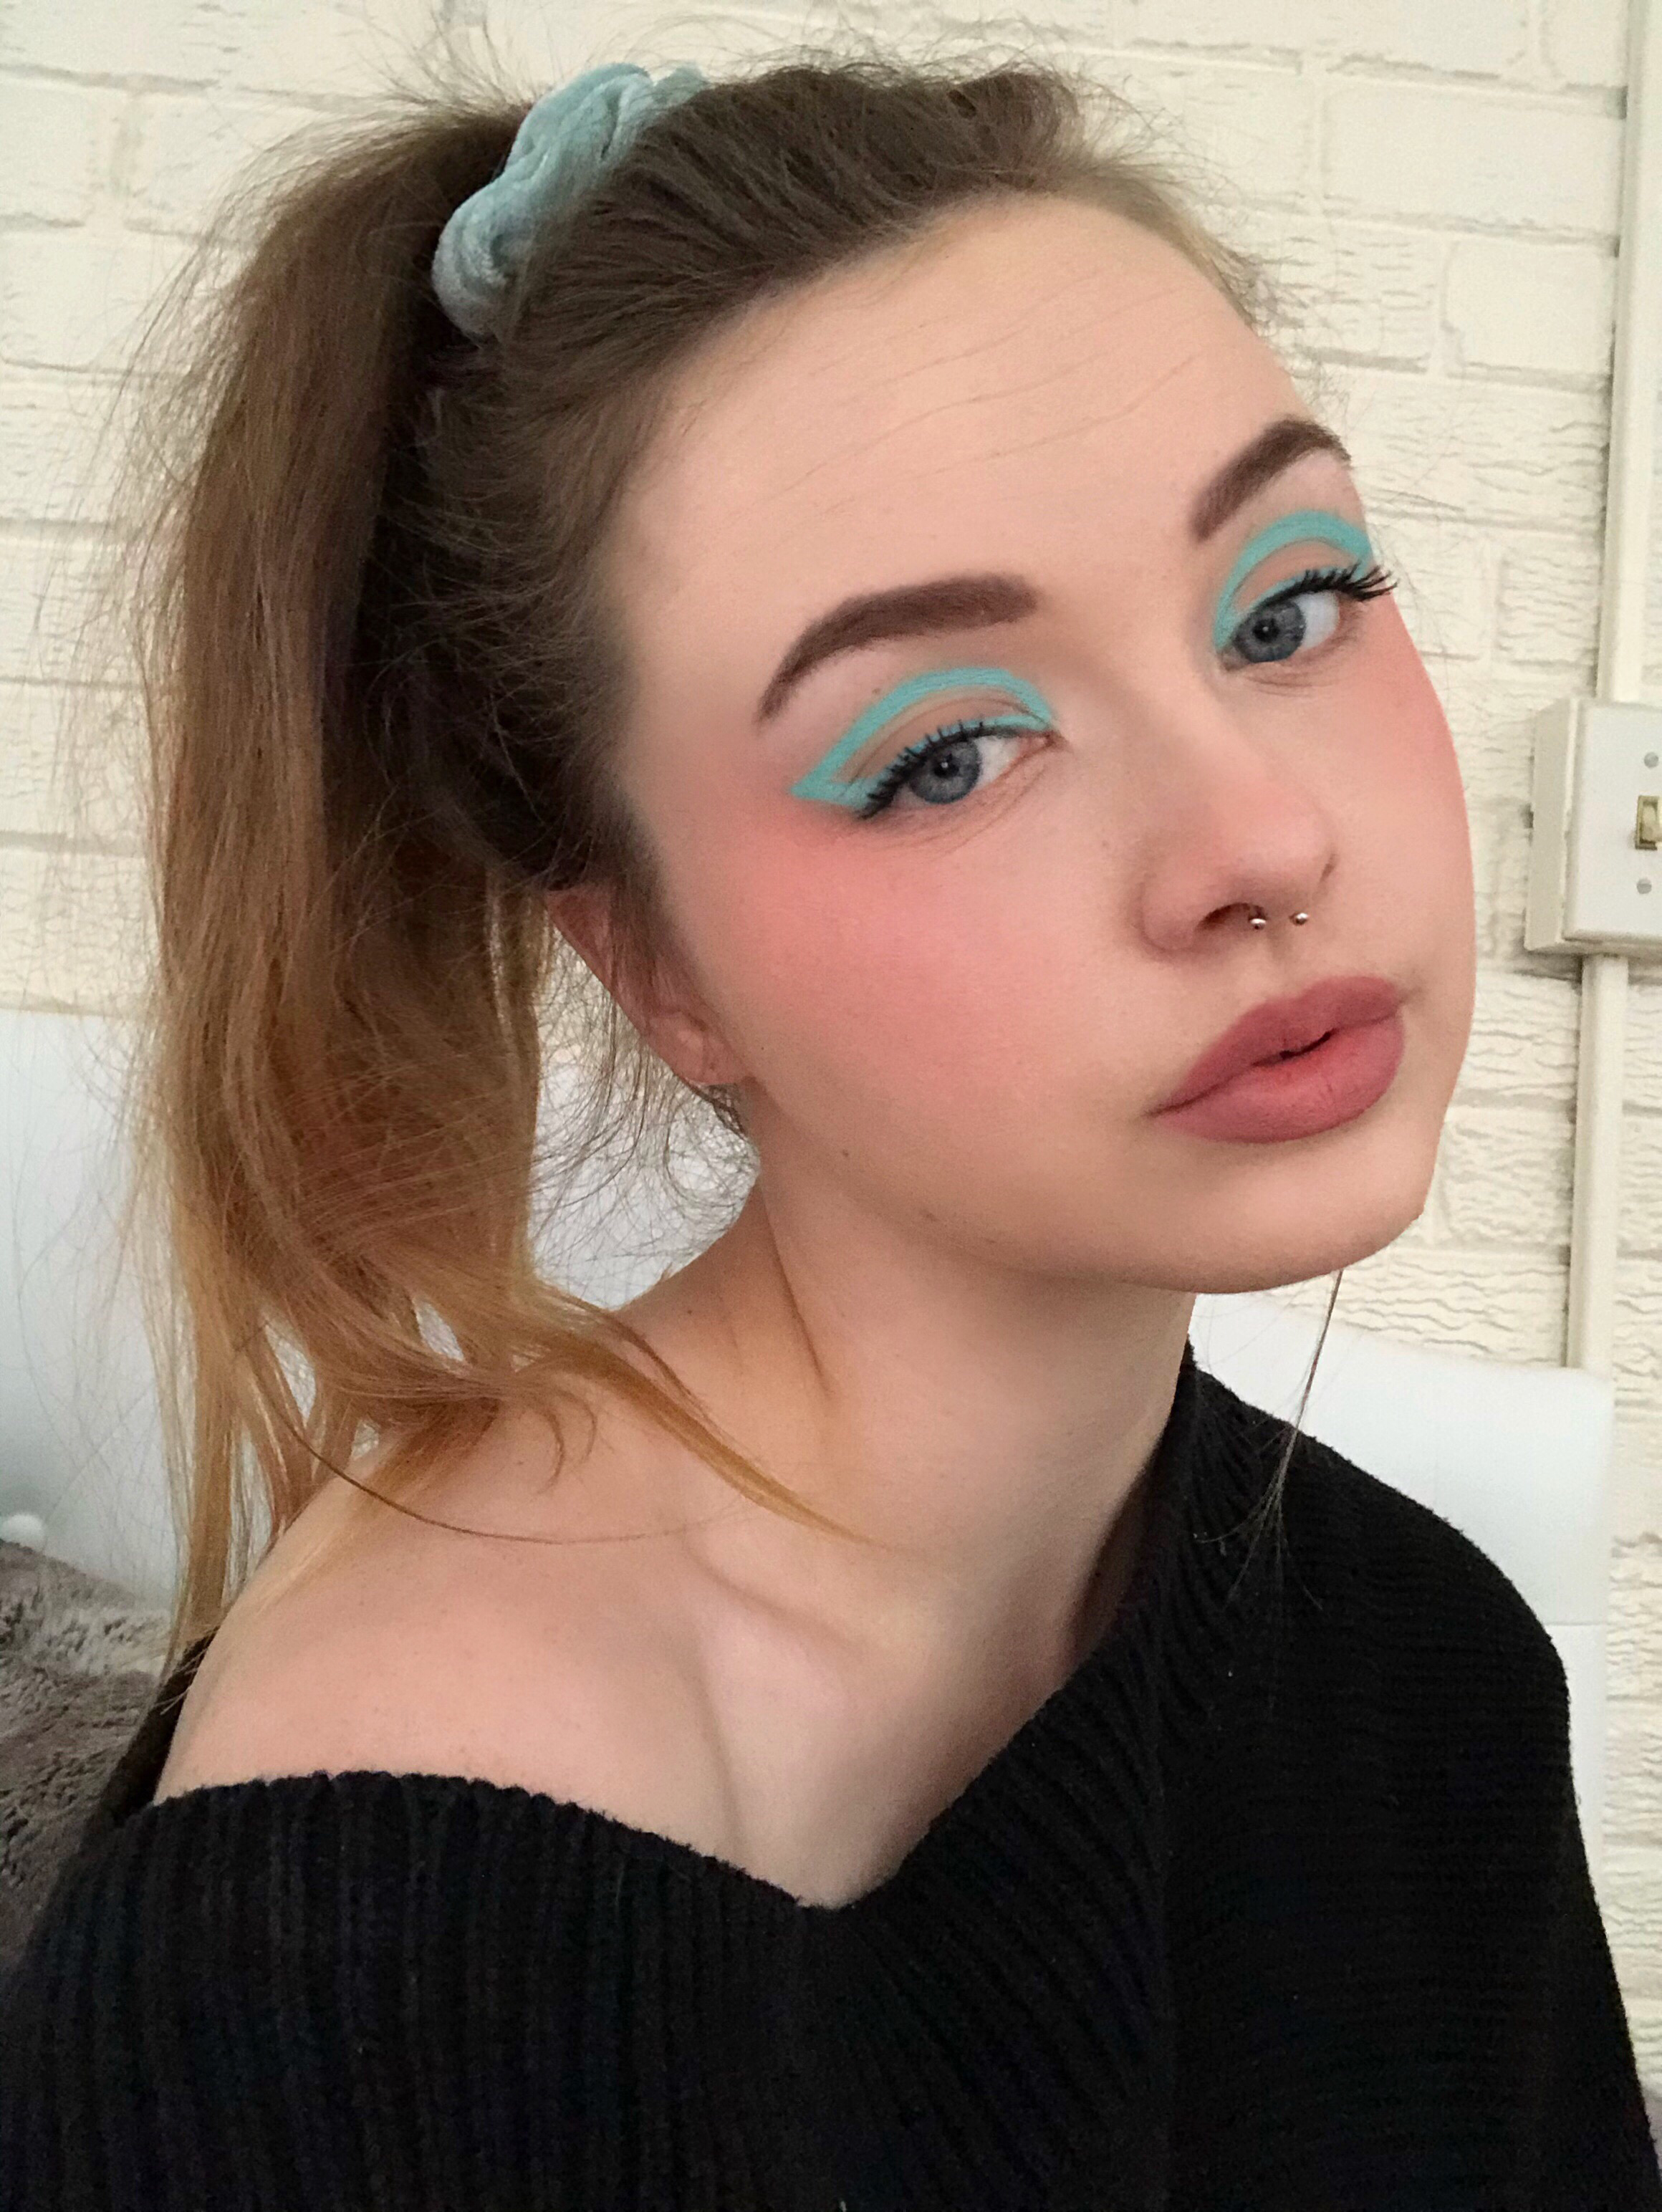 Pin By Tee On Eye Candy James Charles Makeup Inspiration Makeup Looks